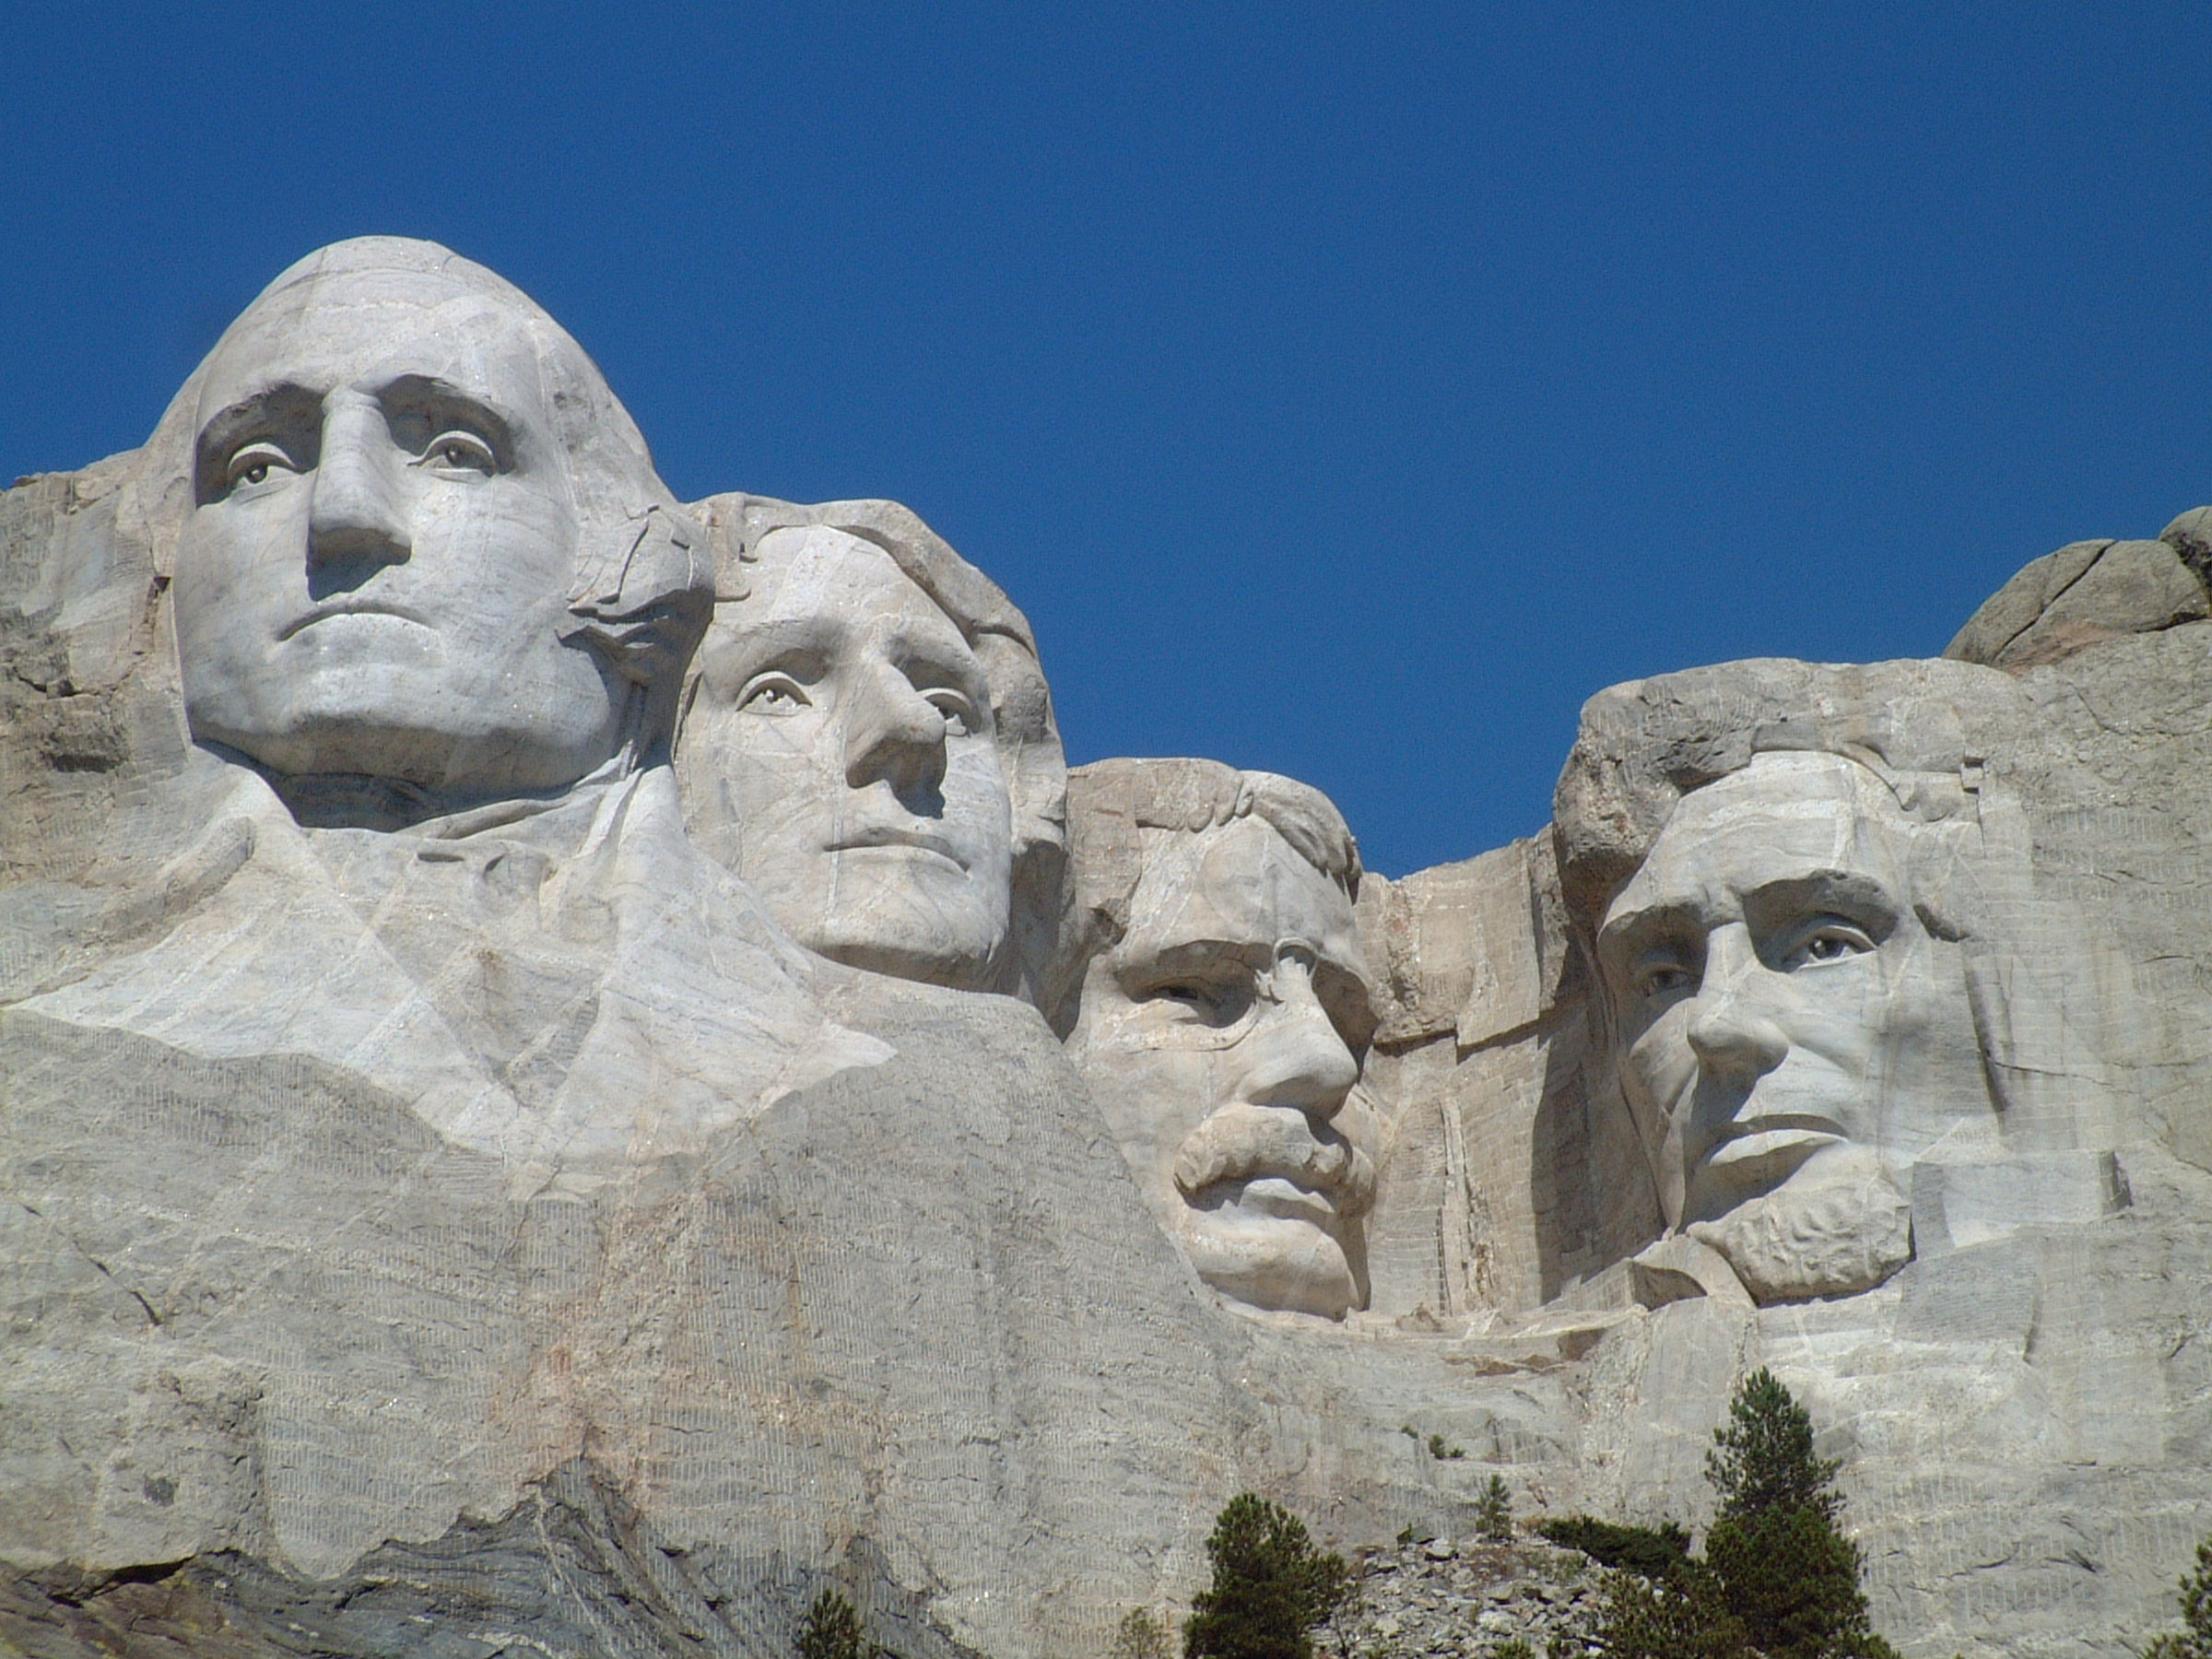 https://i2.wp.com/upload.wikimedia.org/wikipedia/commons/1/10/Mount_Rushmore_National_Memorial.jpg